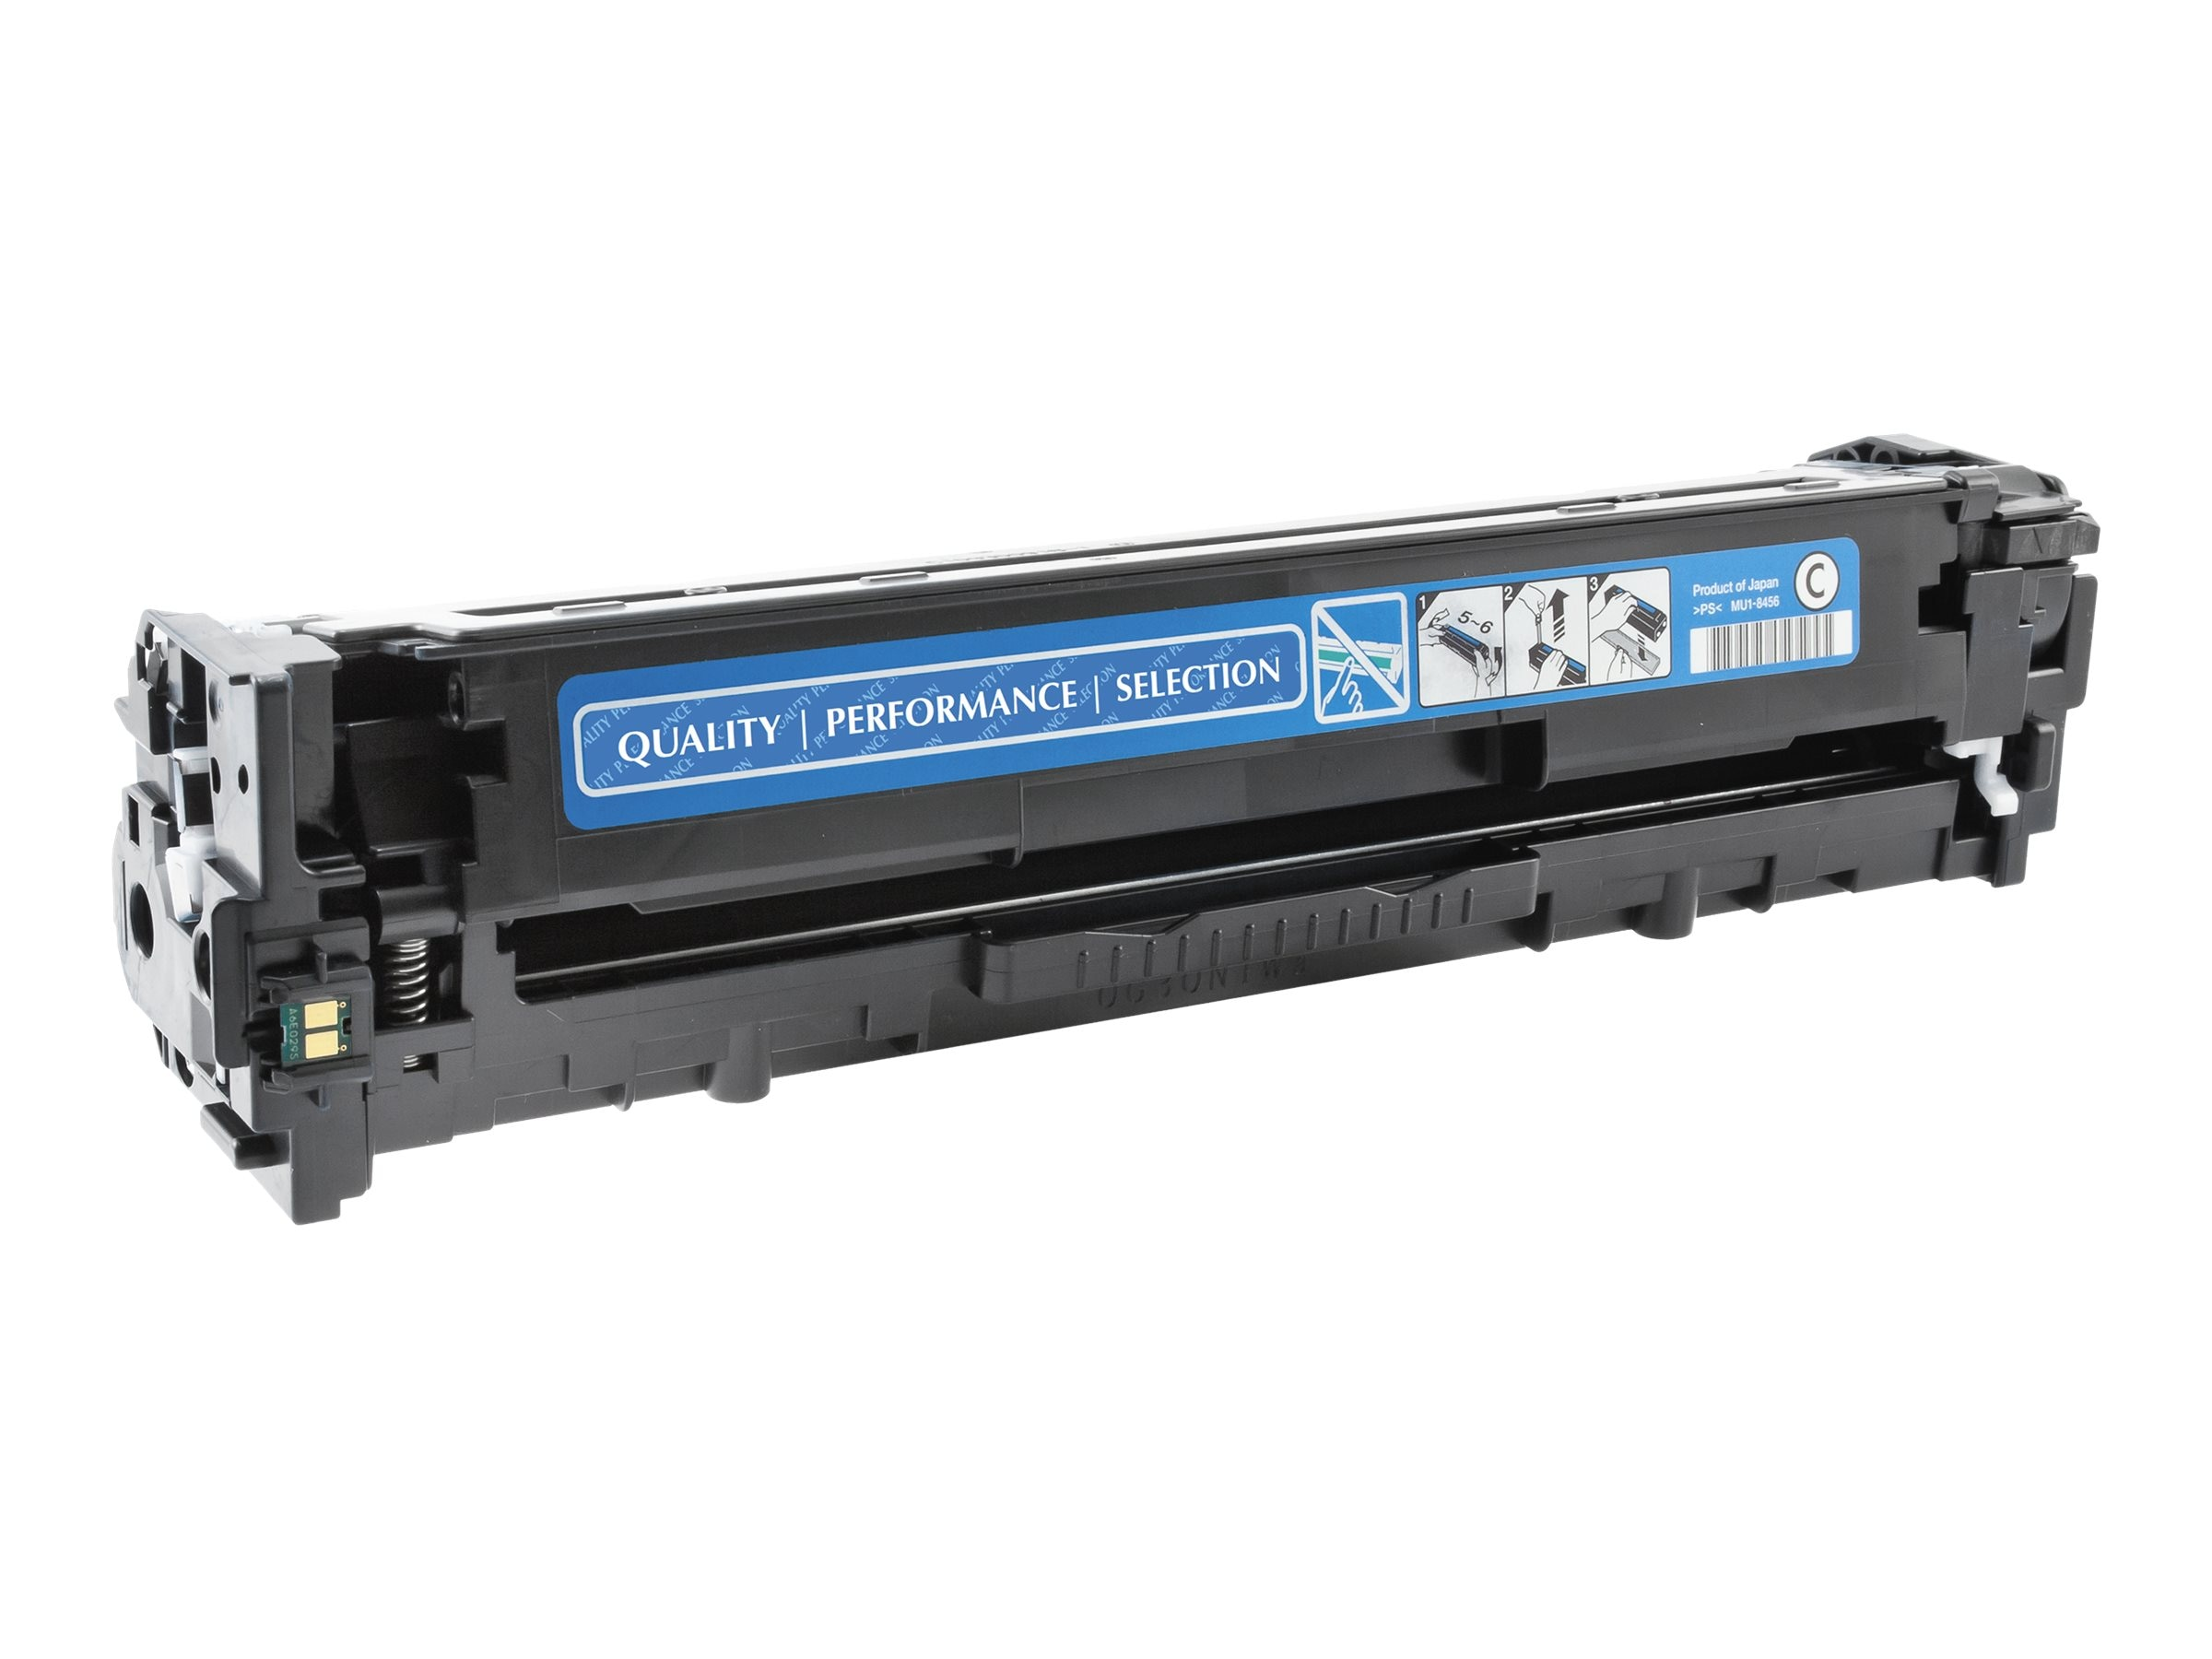 V7 CE321AG Cyan Toner Cartridge for HP Color LaserJet Pro CM1415 & CP1525